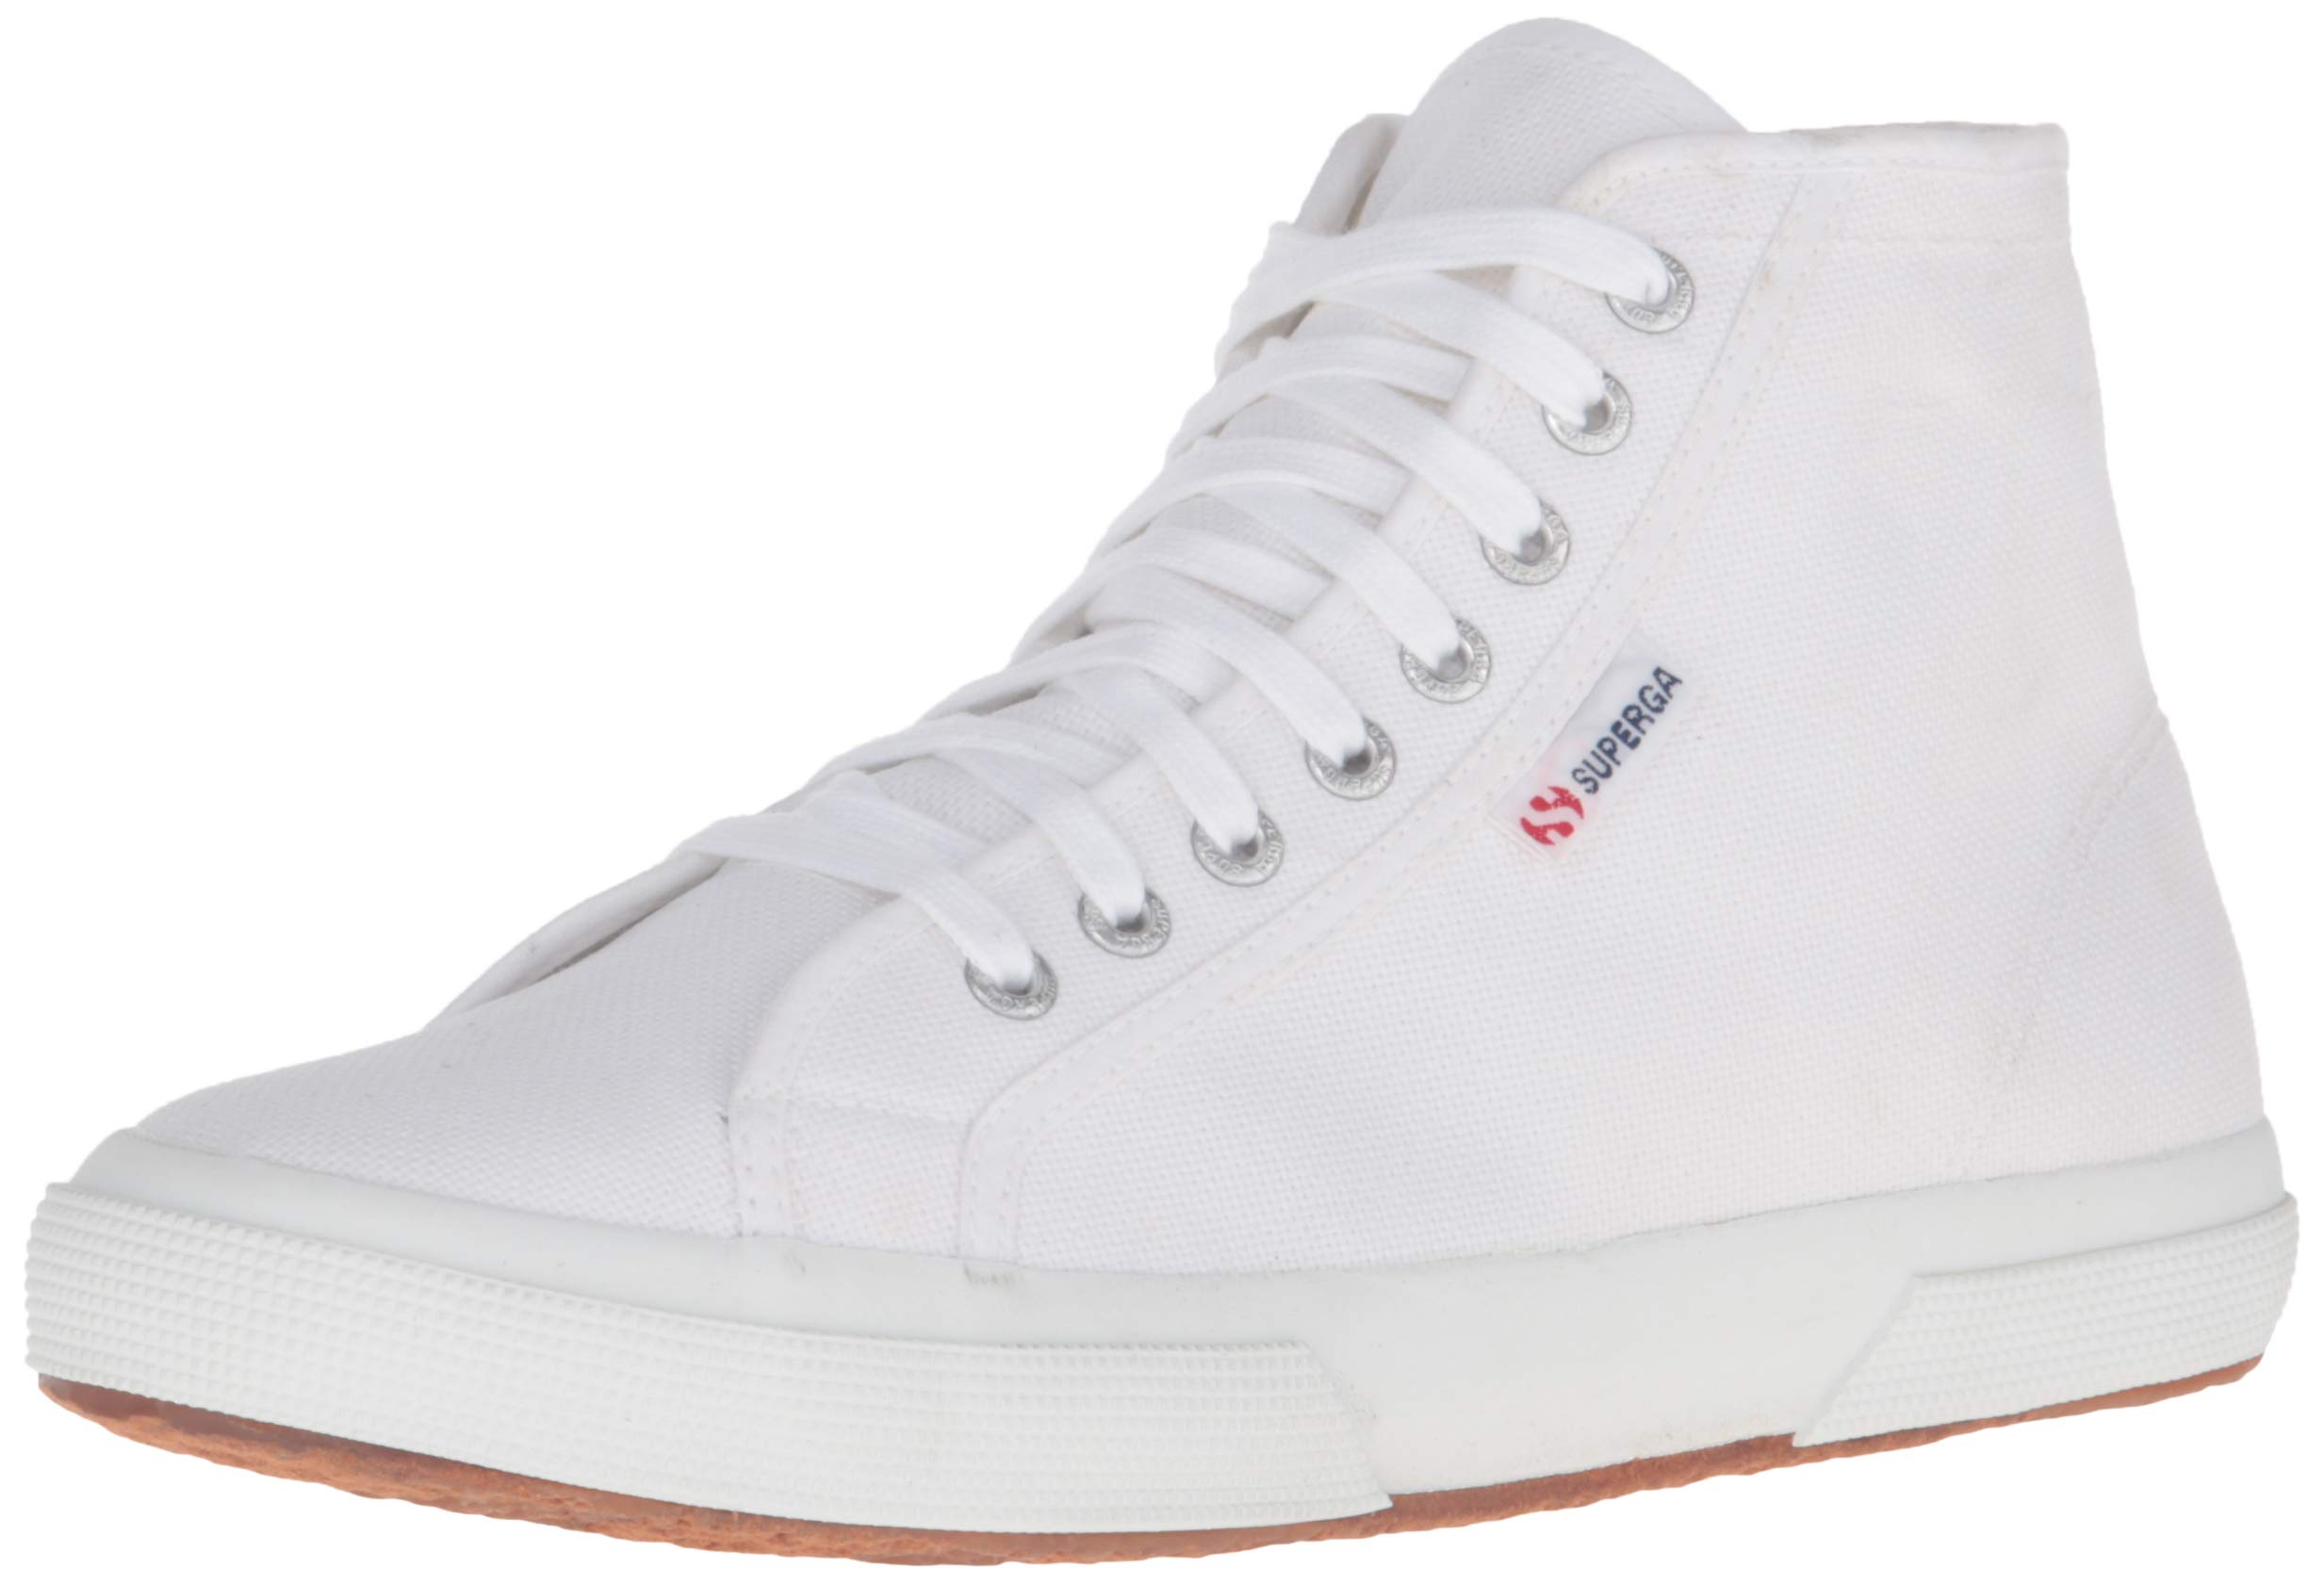 Superga Unisex 2750 Cotu  White Classic Sneaker - 40 M EU / 9 B(M) US Women / 7.5 D(M) US Men by Superga